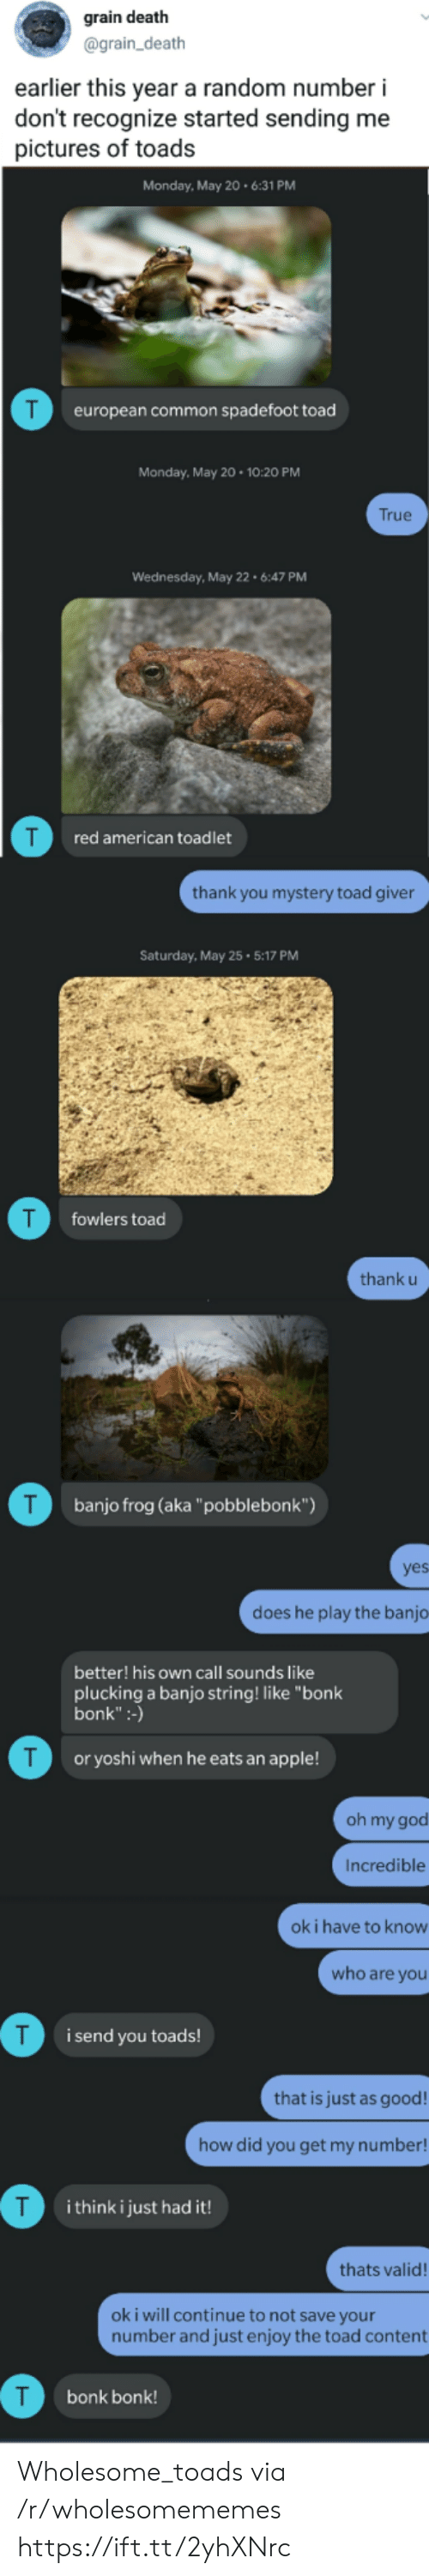 """toads: grain death  @grain_death  earlier this year a random number i  don't recognize started sending me  pictures of toads  Monday, May 20.6:31 PM  T  european common spadefoot toad  Monday, May 20 10:20 PM  True  Wednesday, May 22 6:47 PM  red american toadlet  thank you mystery toad giver  Saturday, May 25 5:17 PM  T  fowlers toad  thank u  T  banjo frog (aka""""pobblebonk"""")  yes  does he play the banjo  better! his own call sounds like  plucking a banjo string! like """"bonk  bonk"""":-)  T  or yoshi when he eats an apple!  oh my god  Incredible  ok i have to know  who are you  i send you toads!  that is just as good!  how did you get my number!  T  i think i just had it!  thats valid!  oki will continue to not save your  number and just enjoy the toad content  bonk bonk! Wholesome_toads via /r/wholesomememes https://ift.tt/2yhXNrc"""